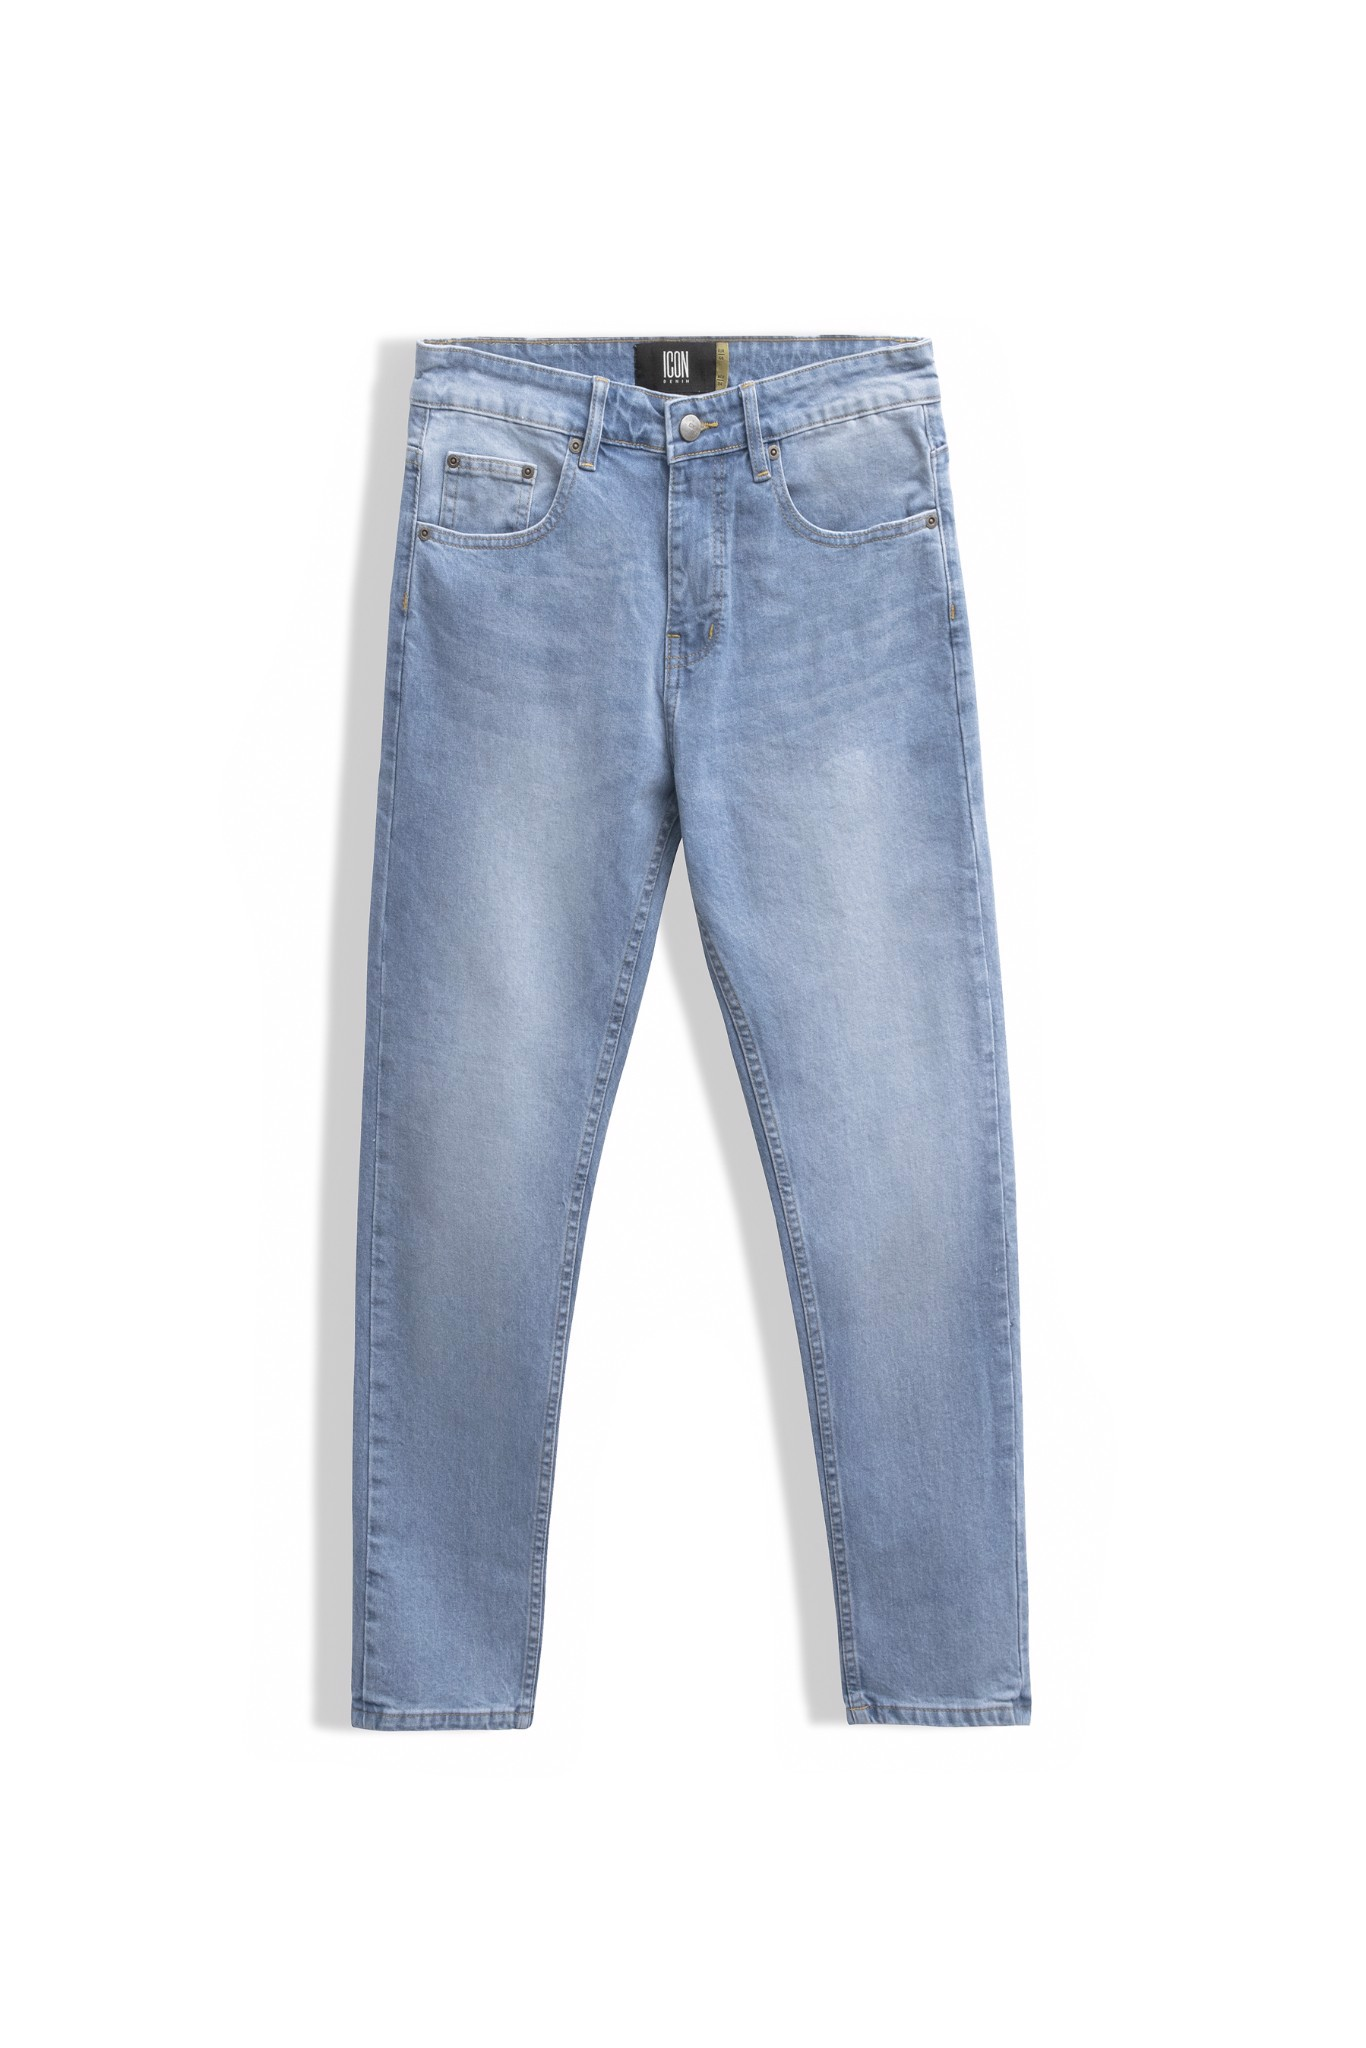 Quần Jean Slim-fit Trơn Light Blue Mid Wash